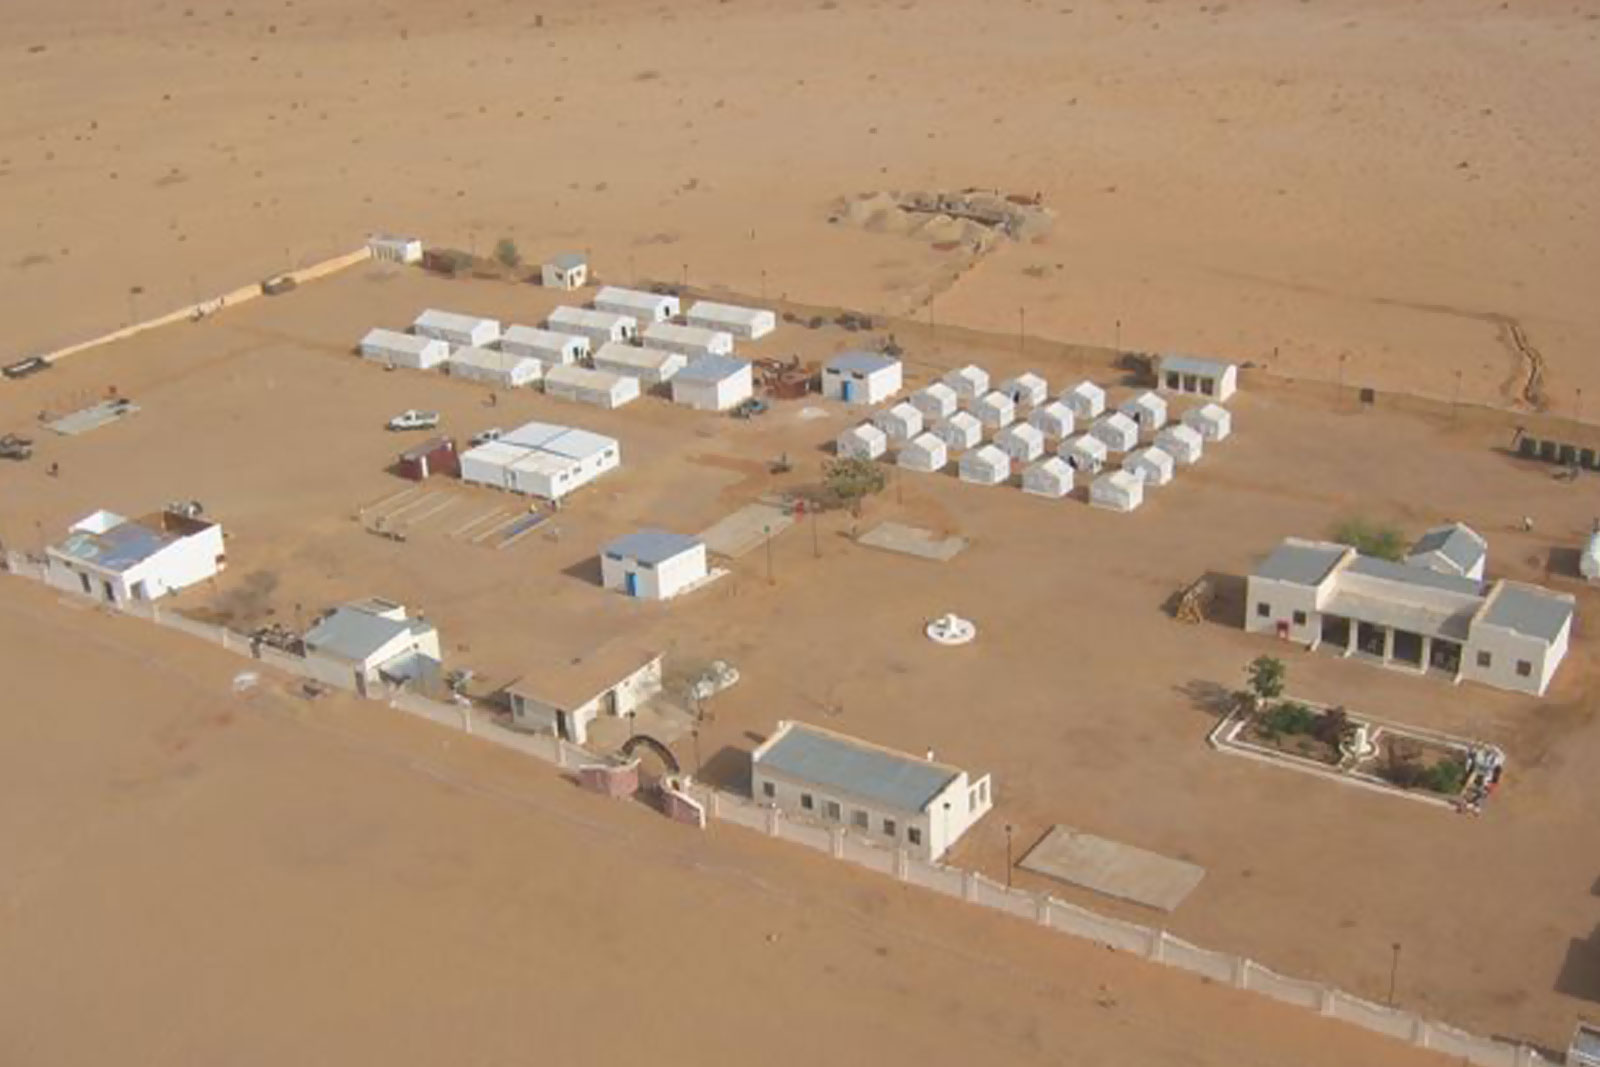 mobile camps in desert